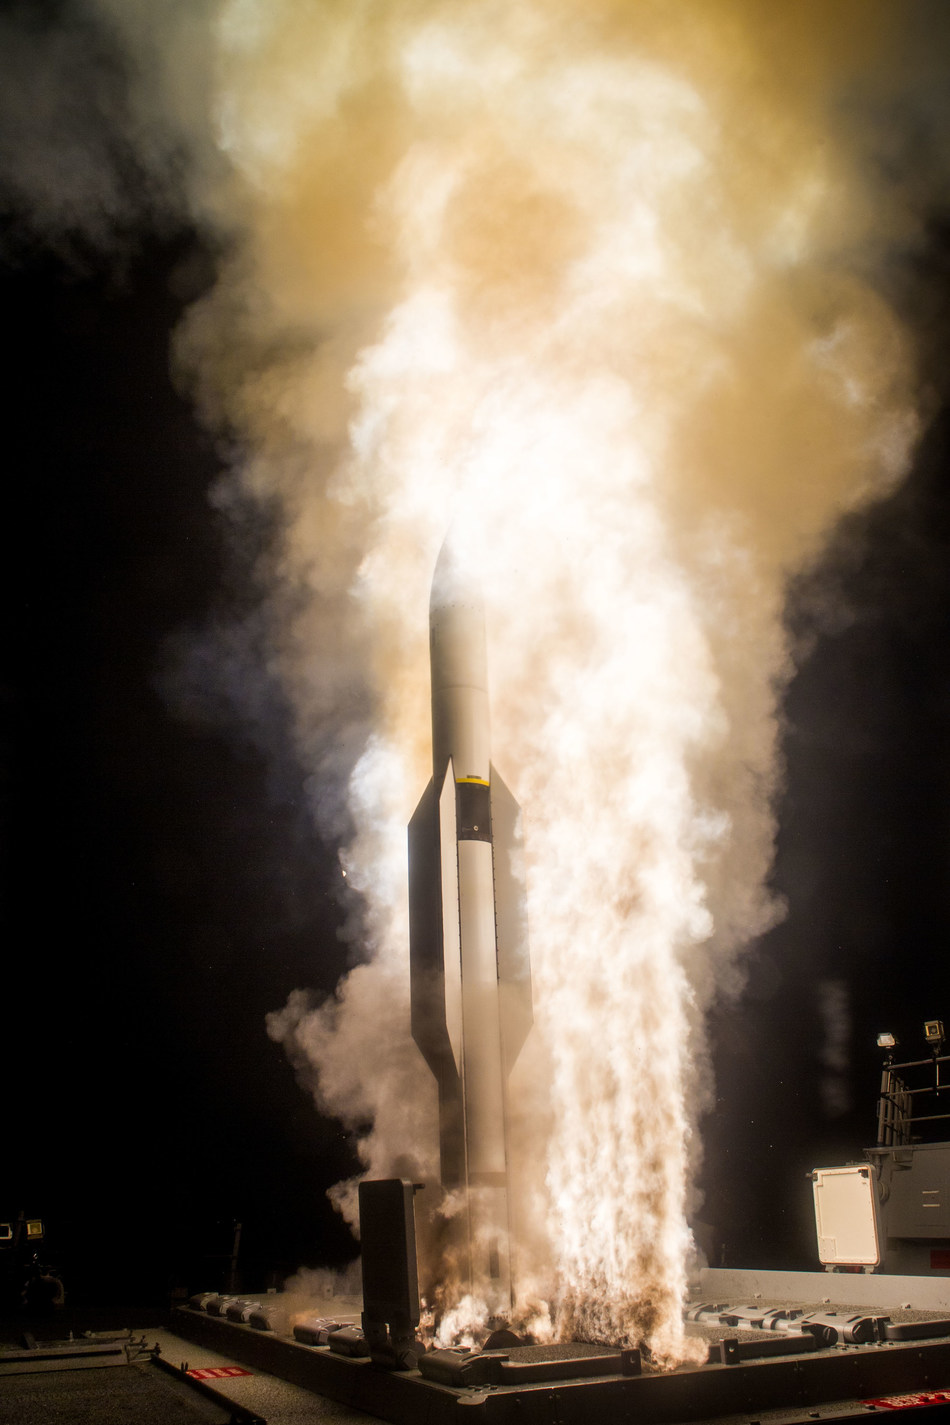 A Standard Missile-6 is launched from the USS John Paul Jones before destroying a medium-range ballistic missile target at sea in its final seconds of flight. (Dec., 2016 - photo courtesy of MDA)